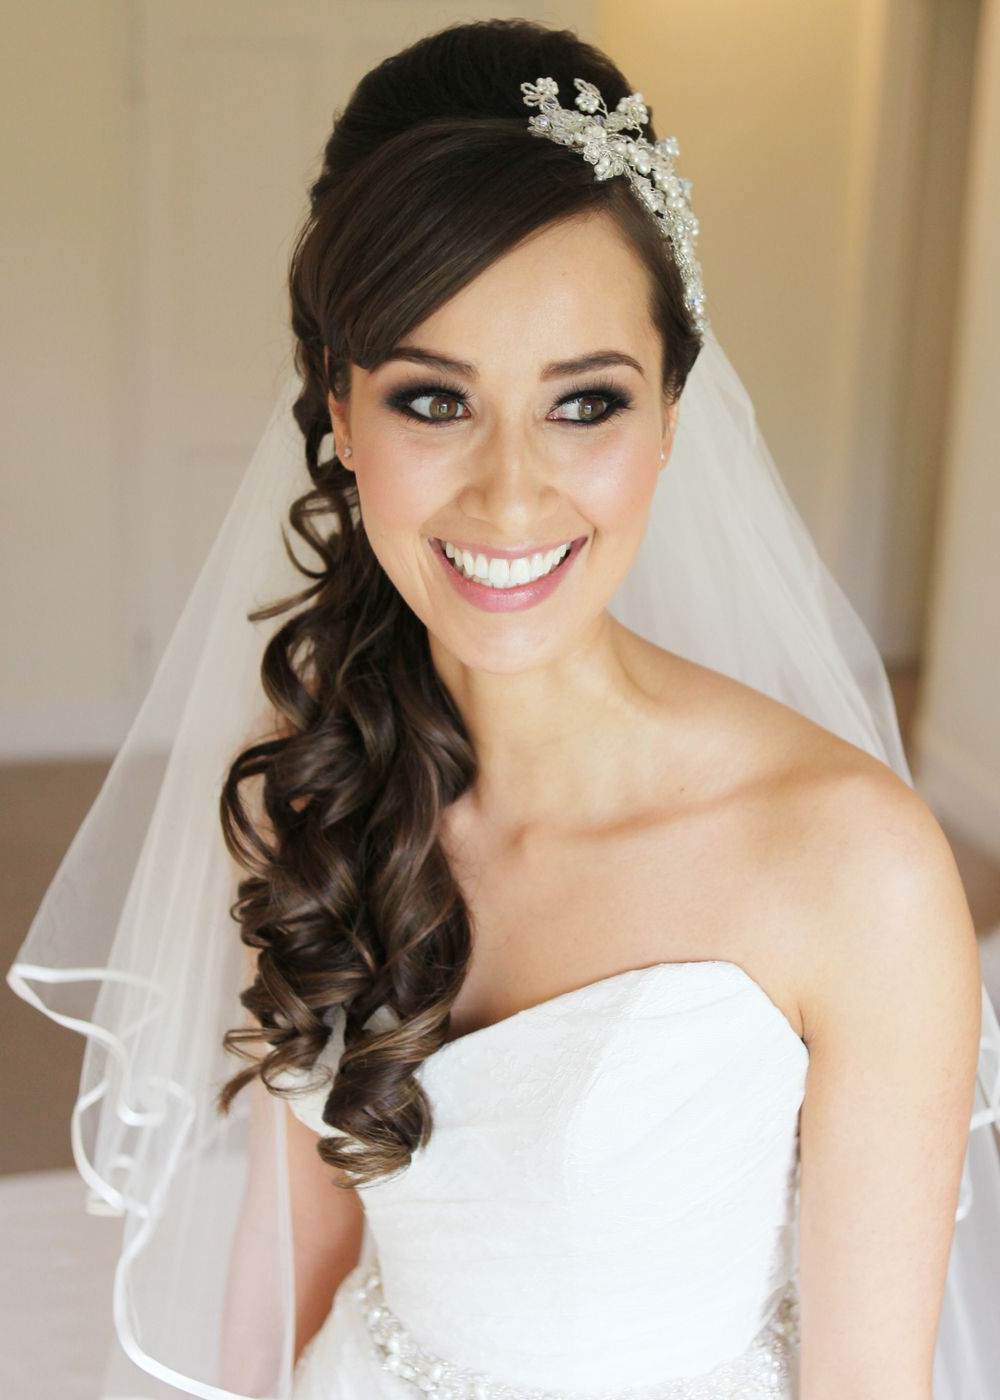 15 Fabulous Half Up Half Down Wedding Hairstyles (View 7 of 20)